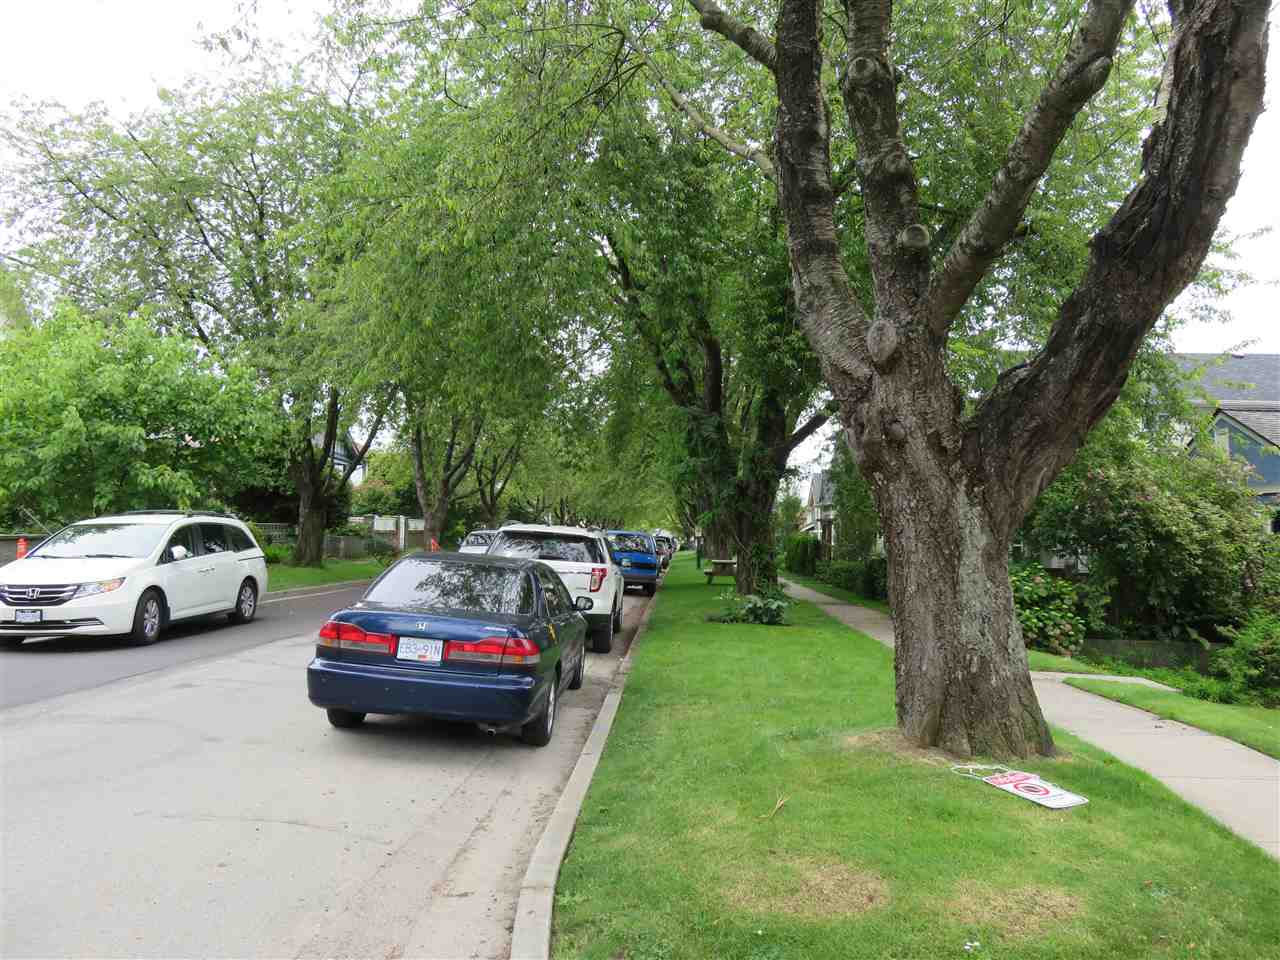 The 1400 block of East 20th is a pretty, tree-lined street!